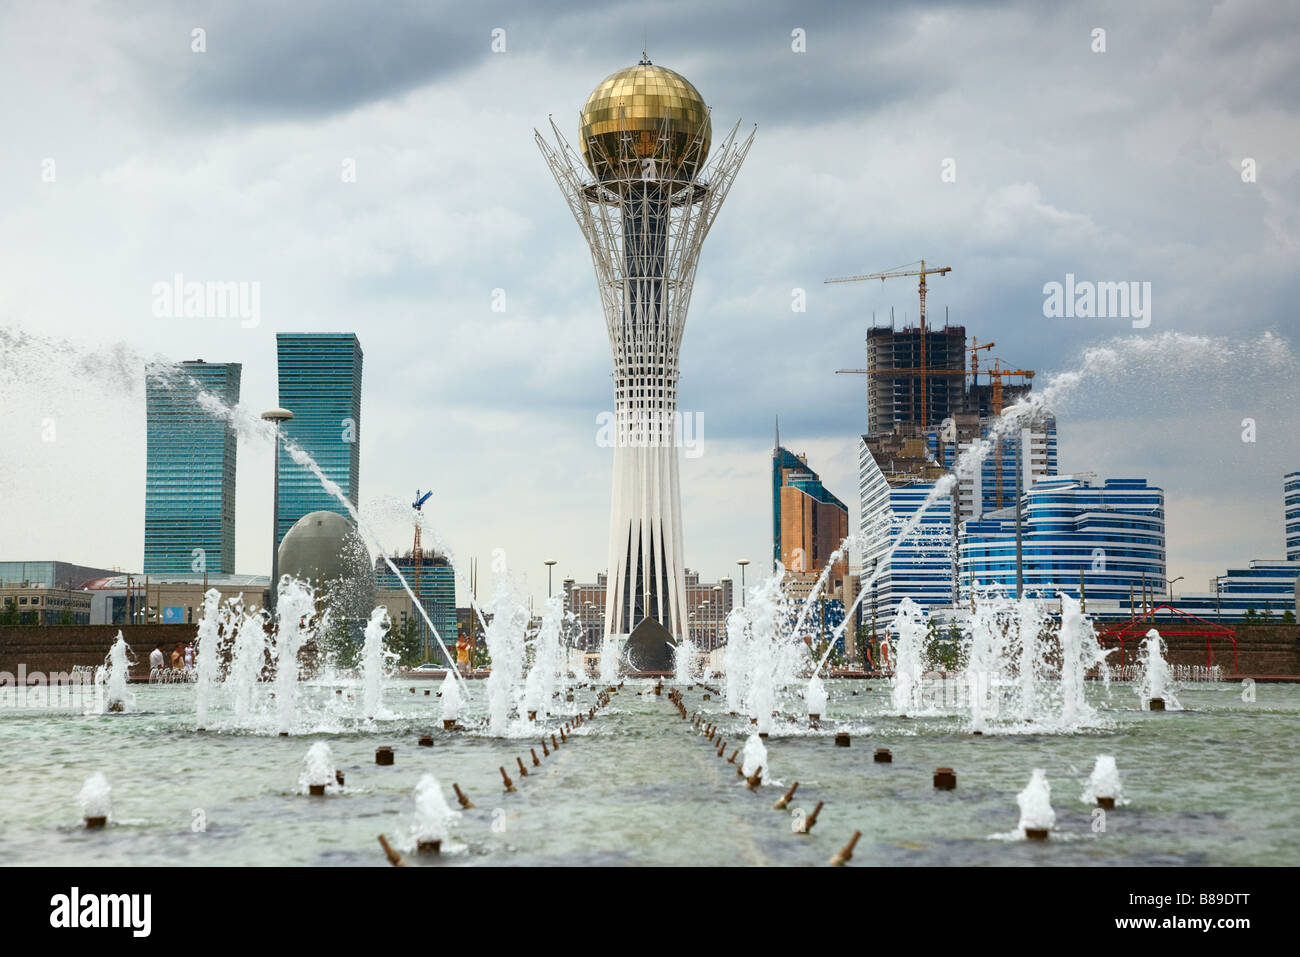 Astana capital of Kazakhstan Republic - Stock Image